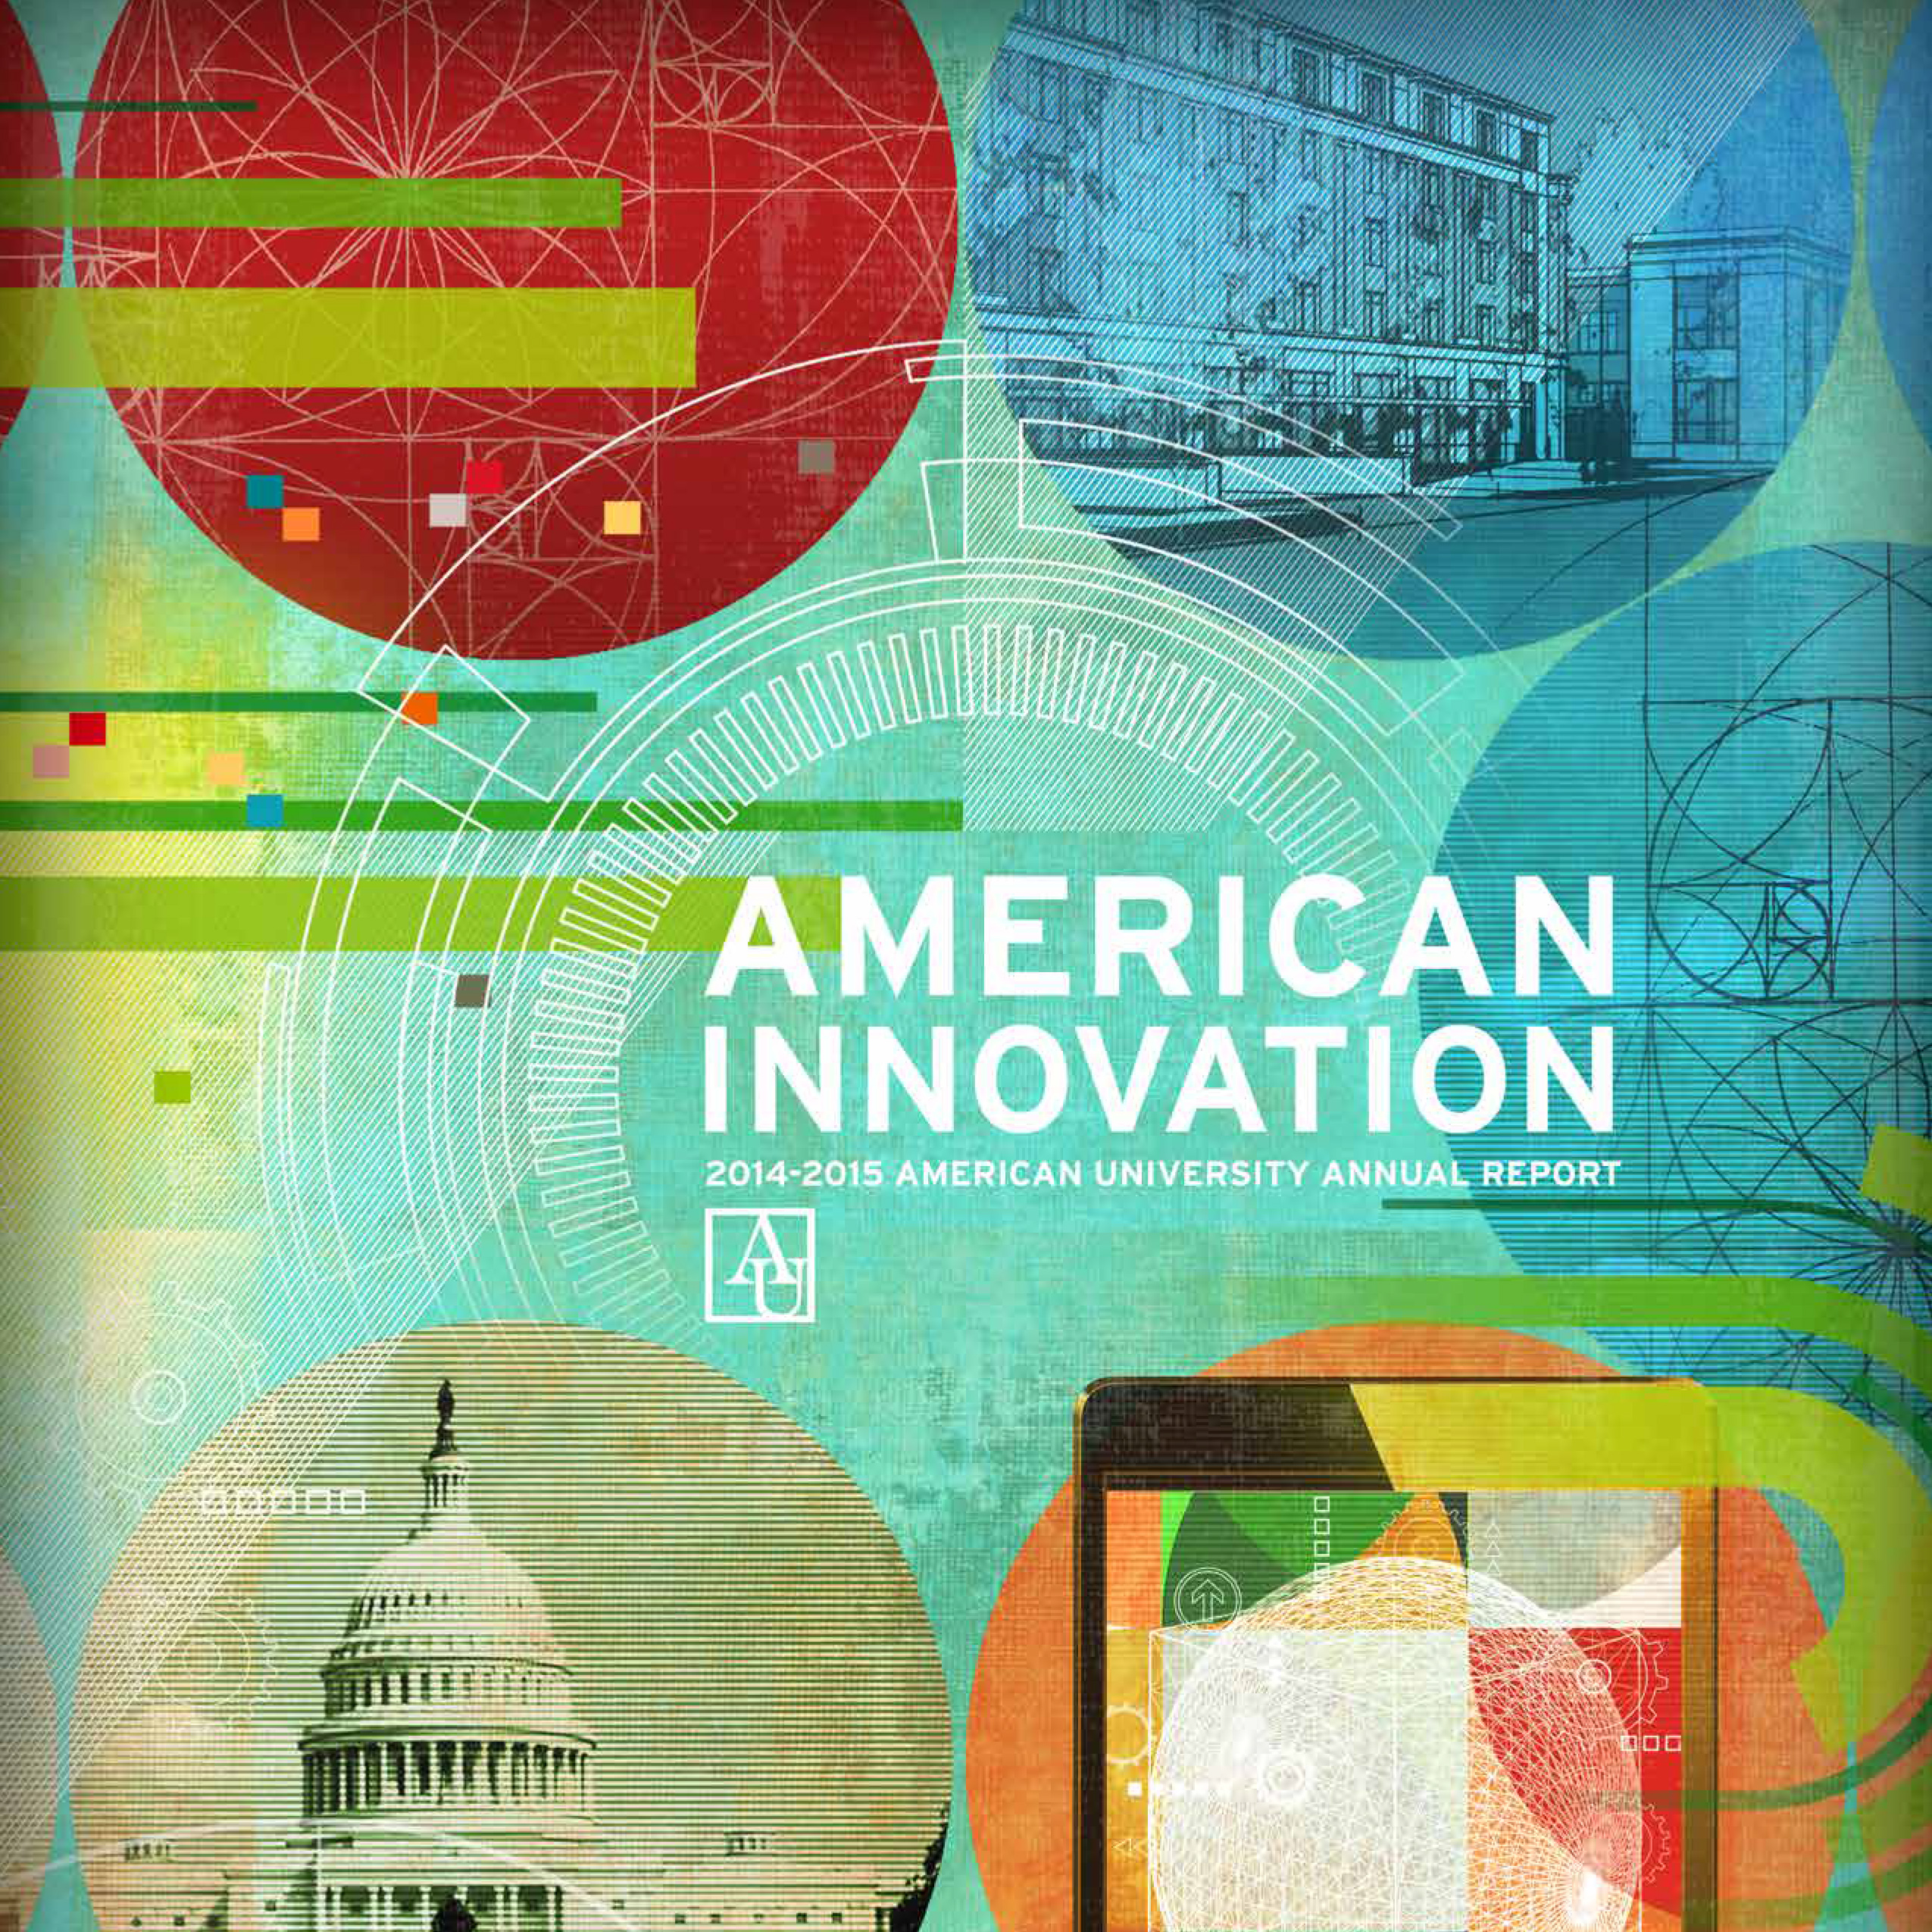 Multicolored cover of the American university 2015 annual report